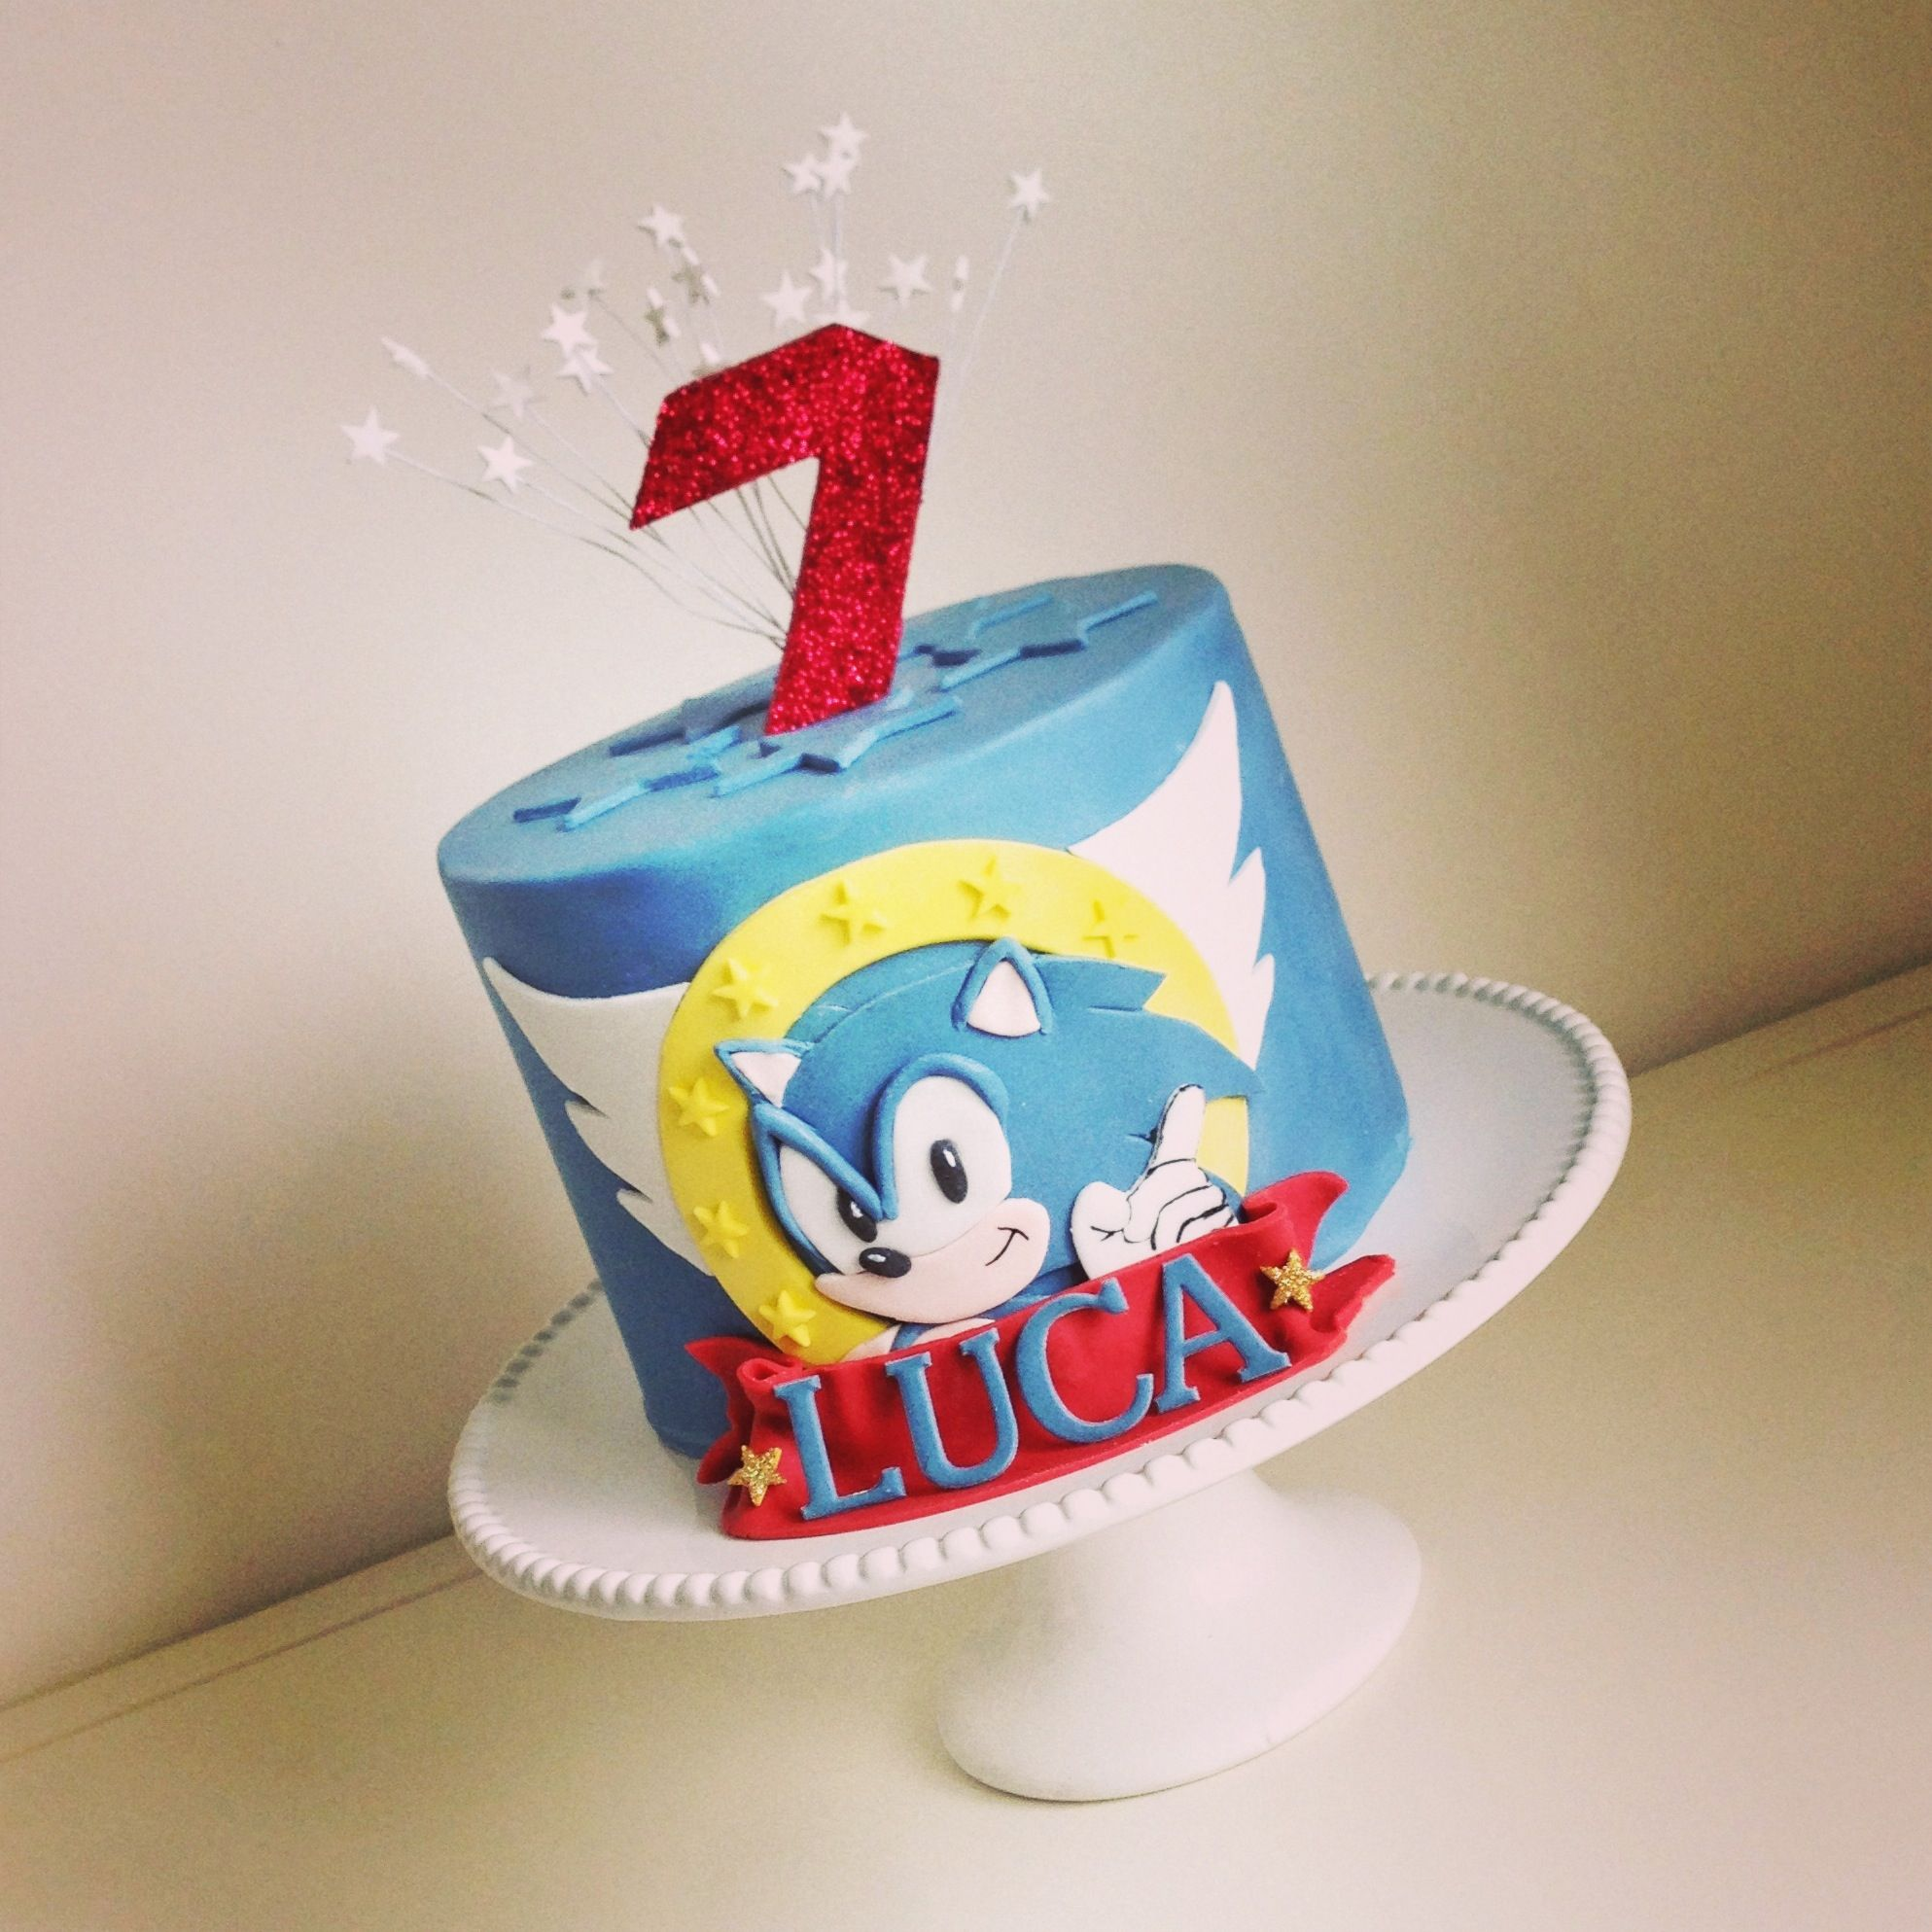 Super Sonic 7th Birthday Cake Chocolate Cake With Oreo Buttercream Frosting Chocolate Ganache Sonic Cake Sonic Birthday Cake Sonic The Hedgehog Cake